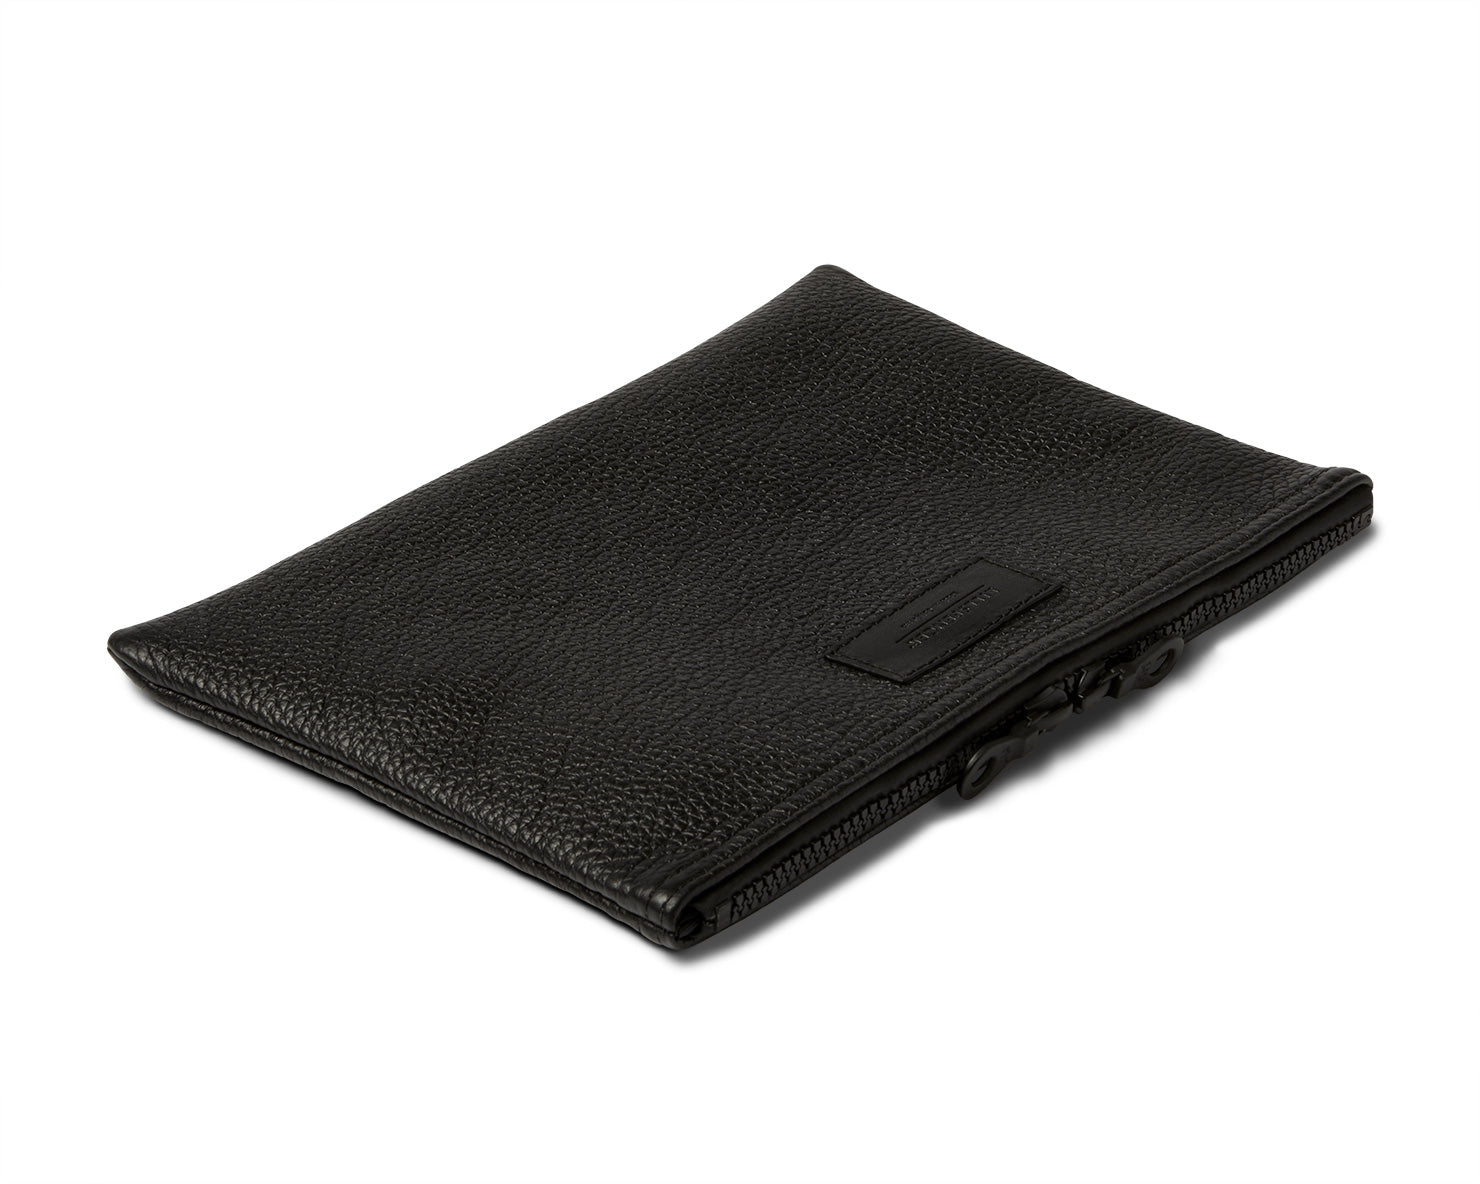 MEDIUM ZIPPERED POUCH | KILLSPENCER®  - Black Leather